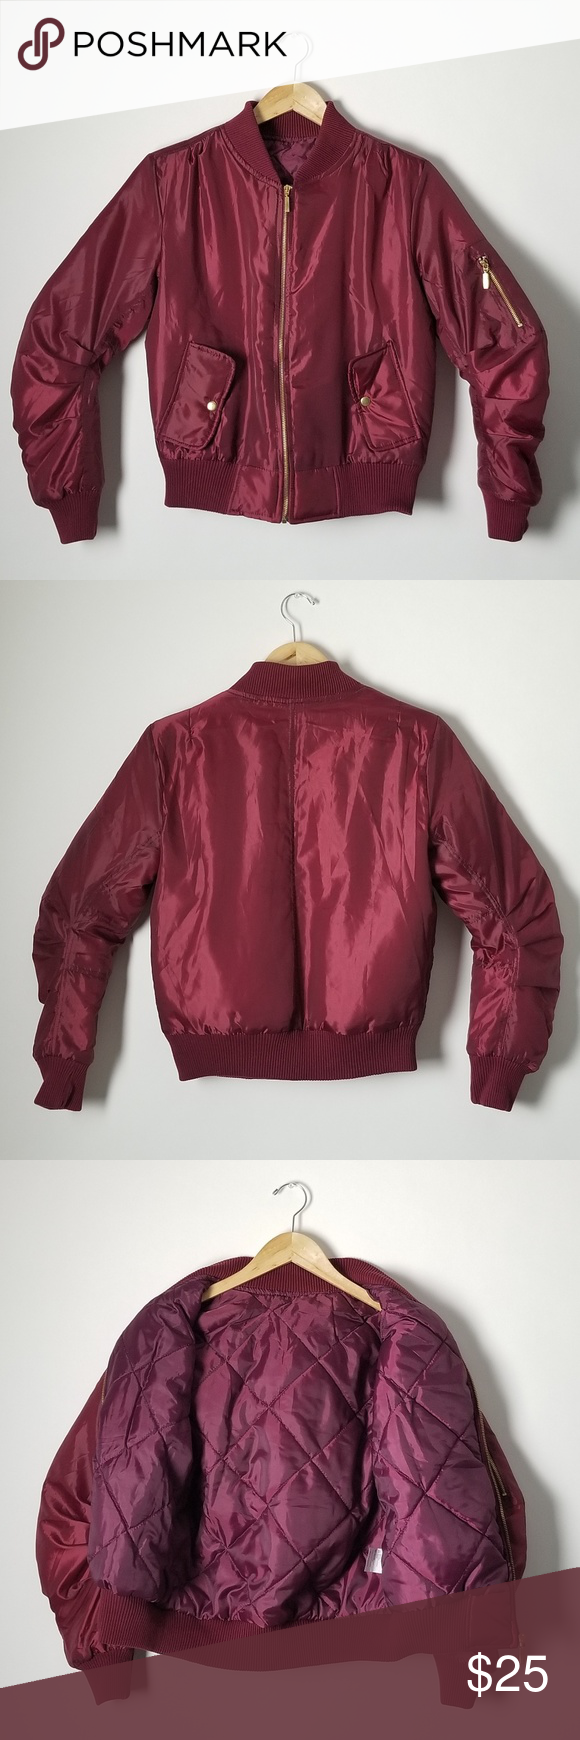 New Maroon Puffy Bomber Jacket Sample Fashion Clothes Design Fashion Trends [ 1740 x 580 Pixel ]